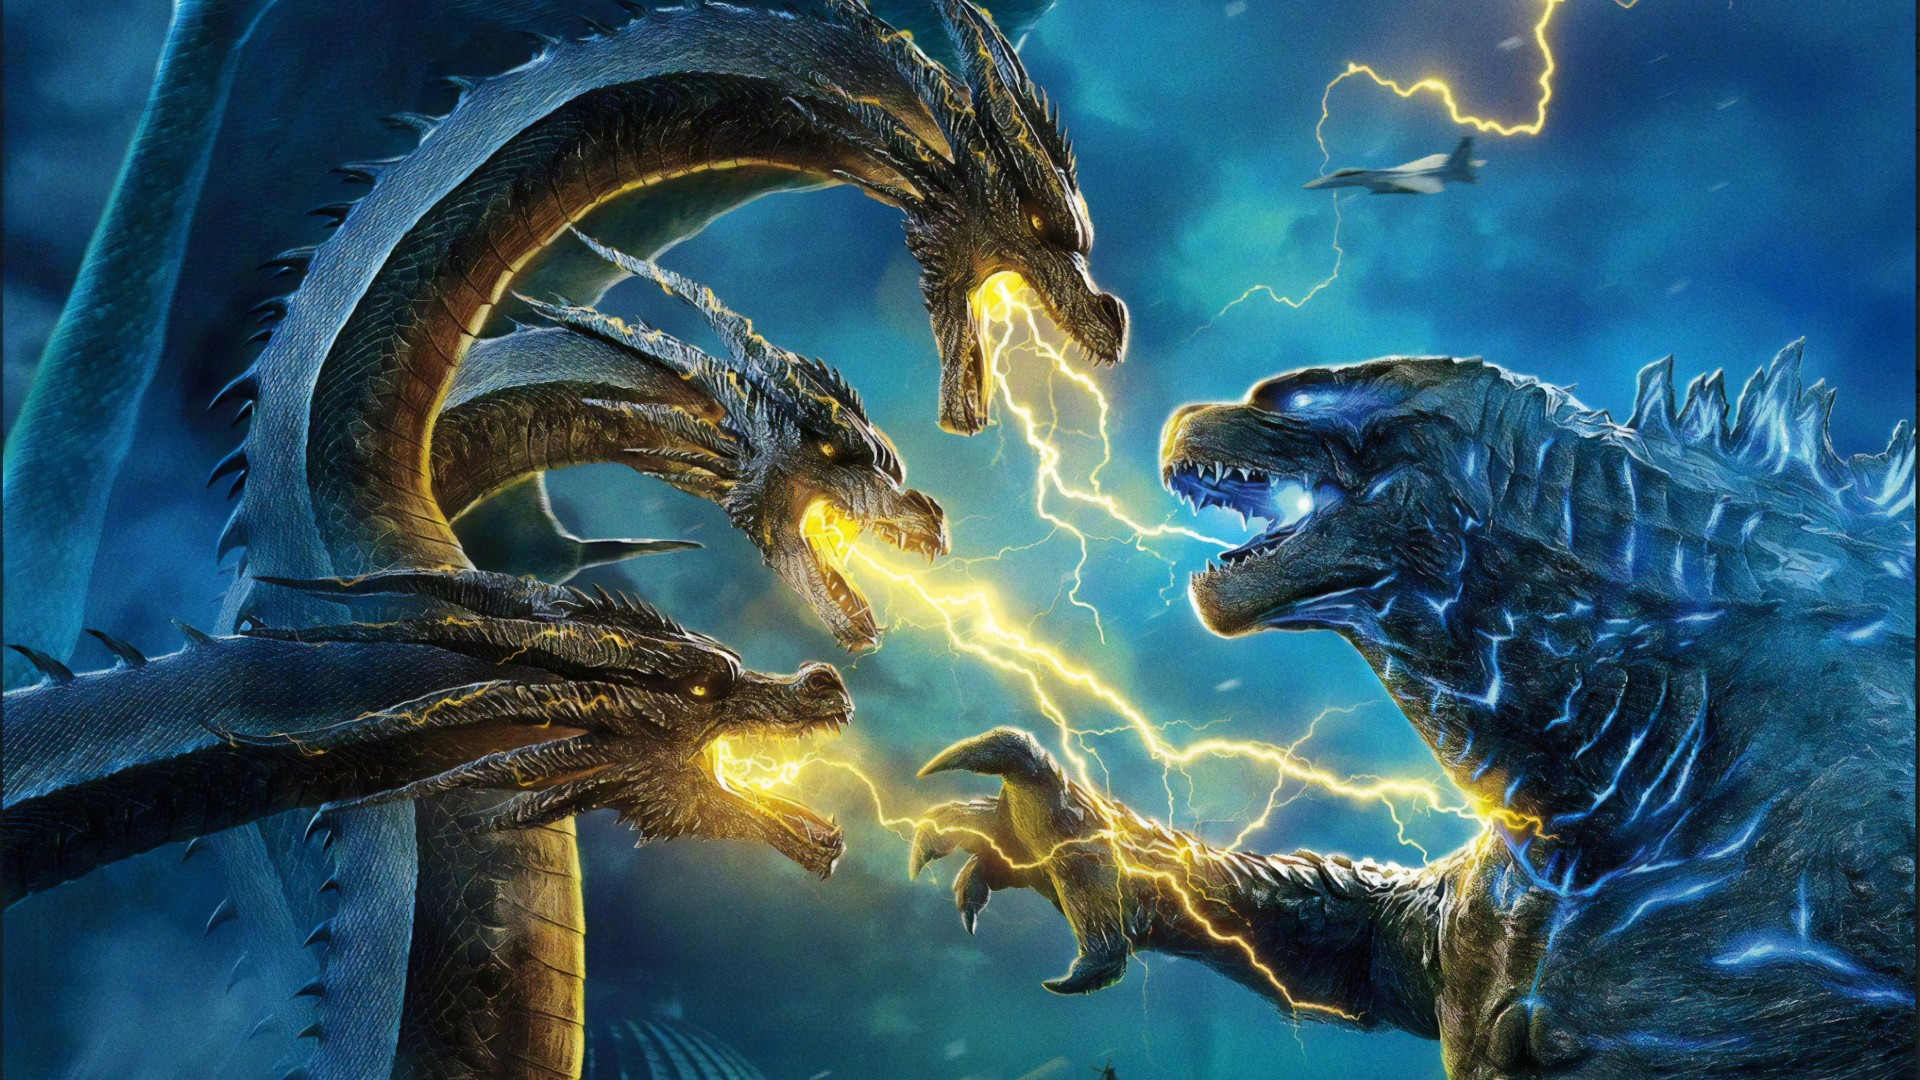 Download Cars Wallpapers For Windows 7 Godzilla Vs King Ghidorah 4k Wallpapers Hd Wallpapers